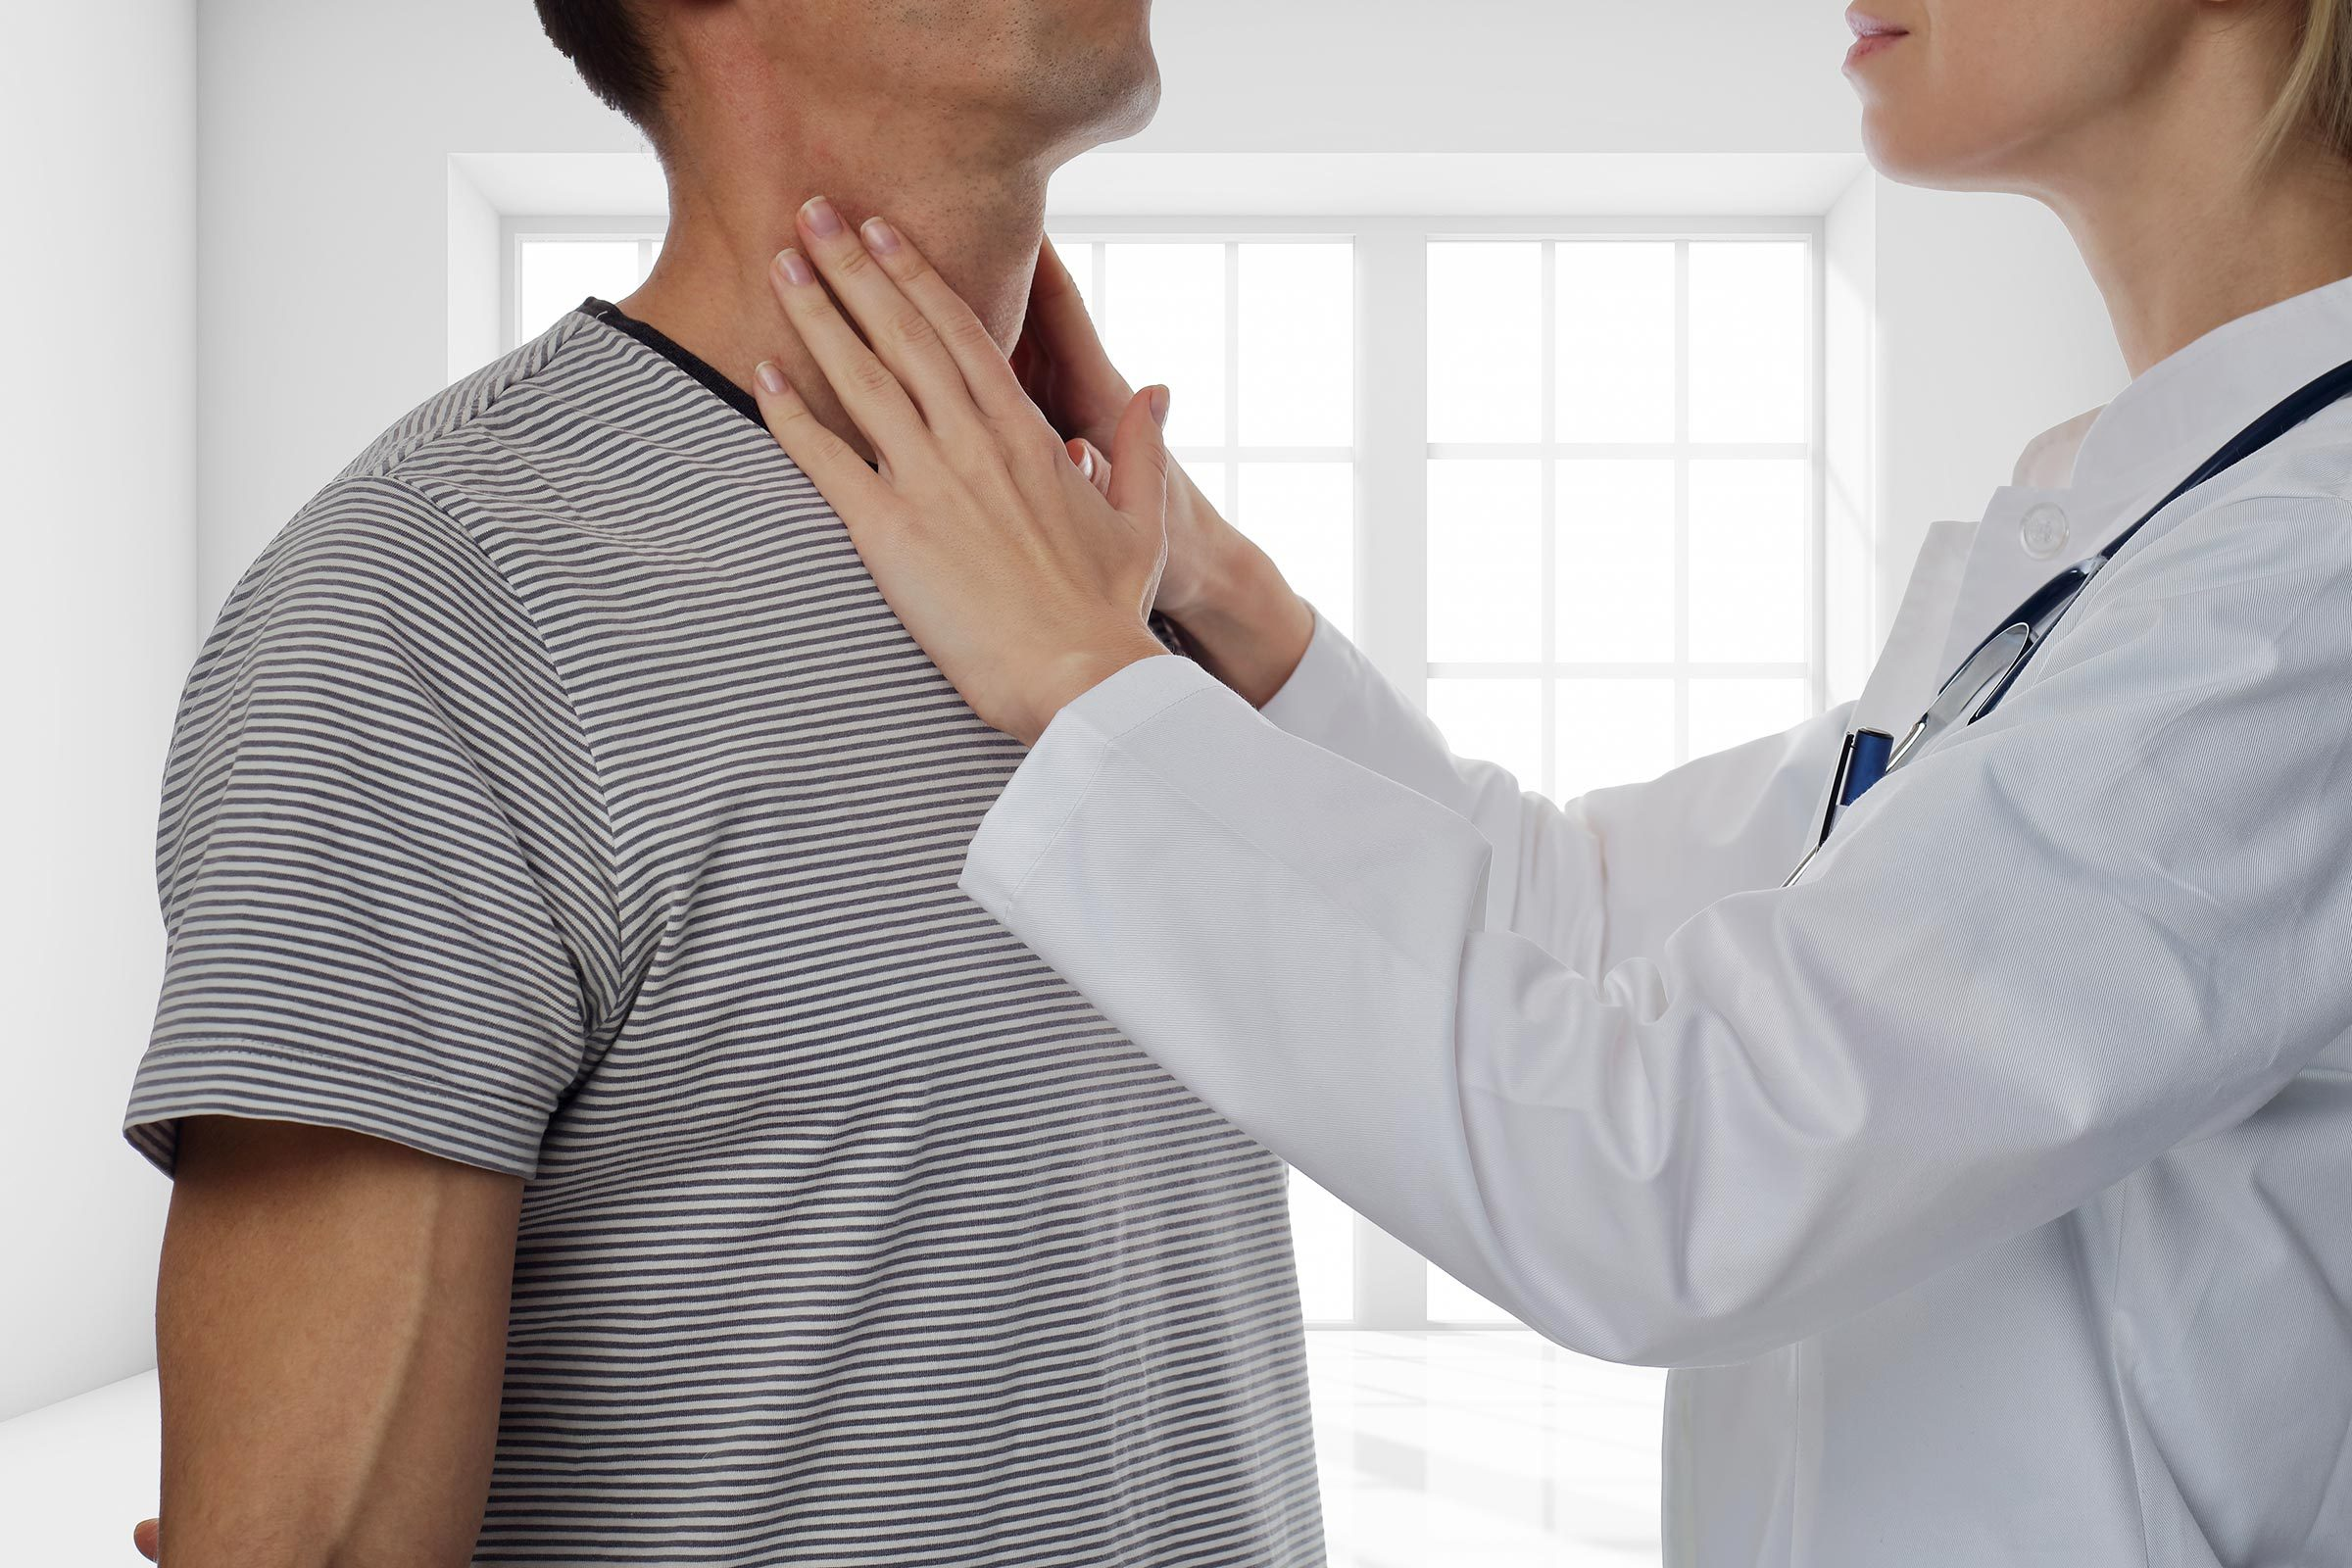 lymph nodes doctor check neck